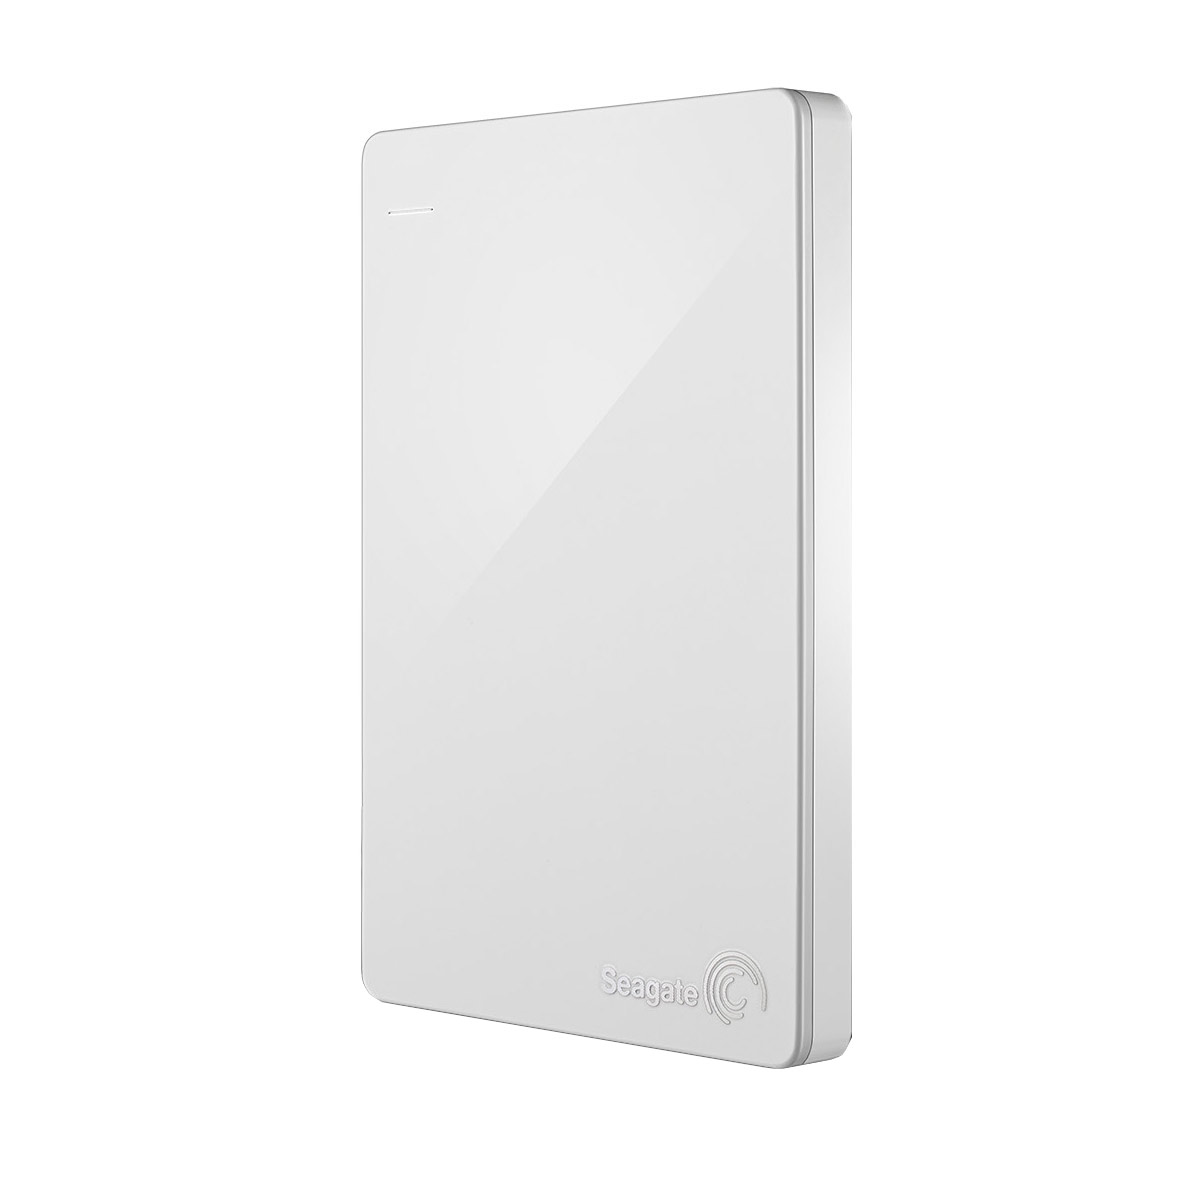 seagate backup plus slim 1 to blanc usb 3 0 recovery. Black Bedroom Furniture Sets. Home Design Ideas